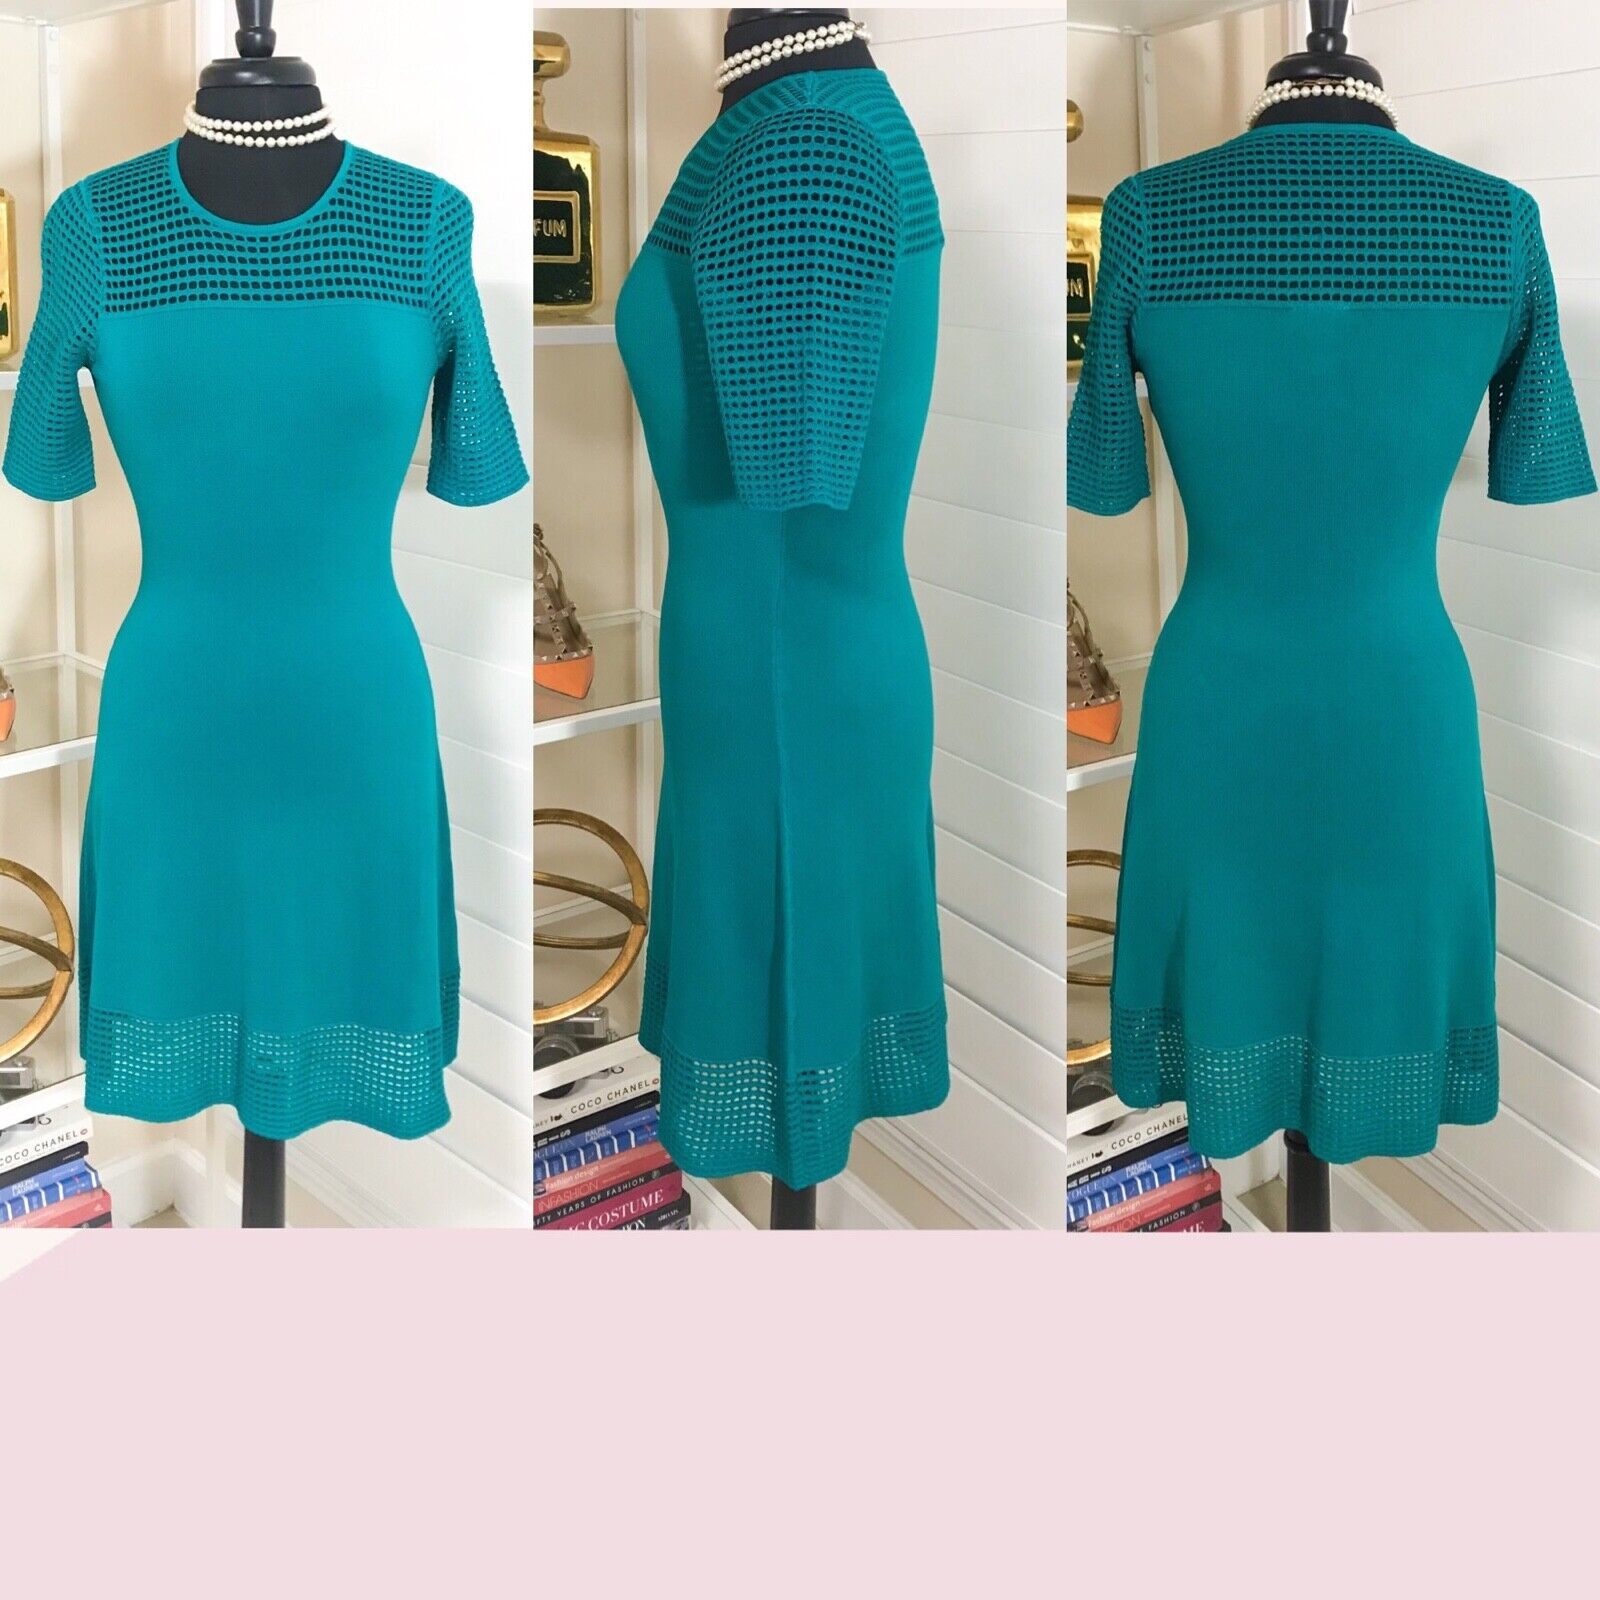 Pre-owned Women's NANETTE Nanette Lepore   Open Knit Trim Dress, Teal, Sz. Small